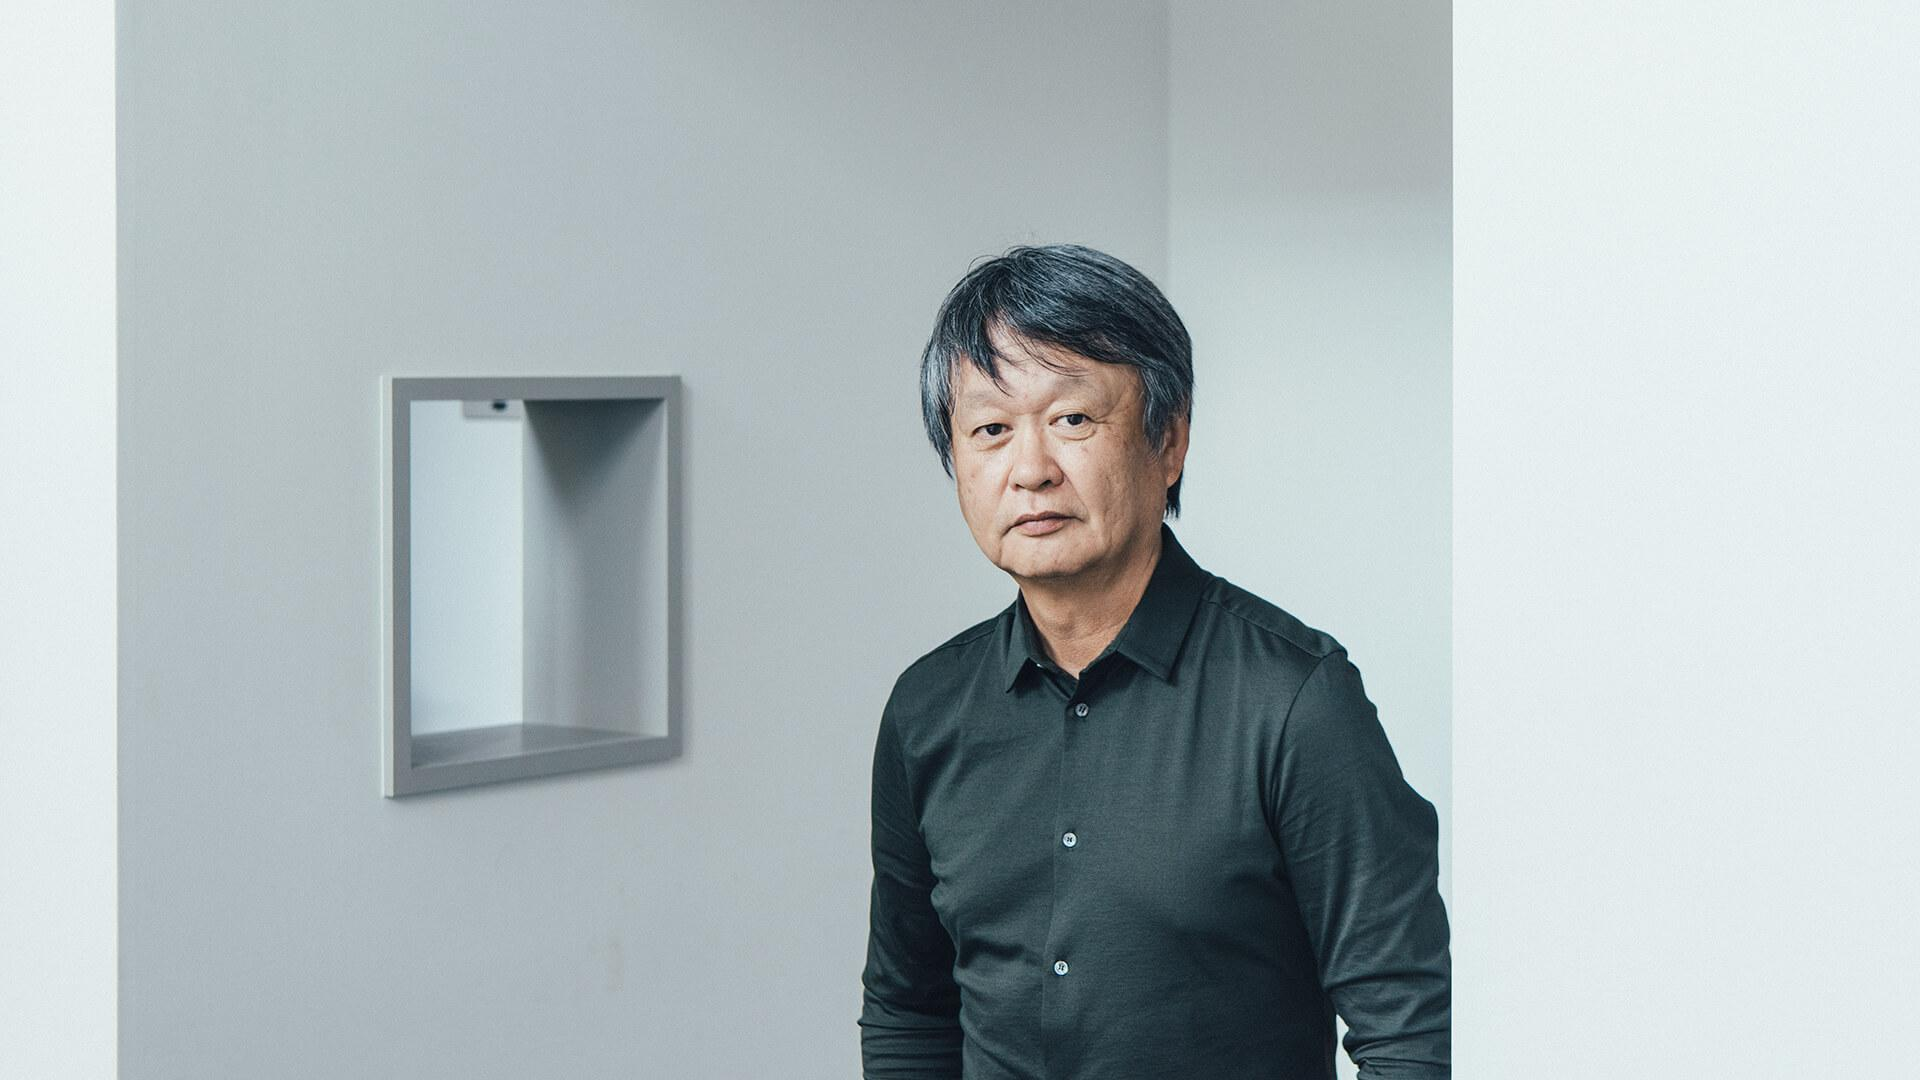 FRAME | 'An object's user experience will win the heart of its consumers,'  says Naoto Fukasawa